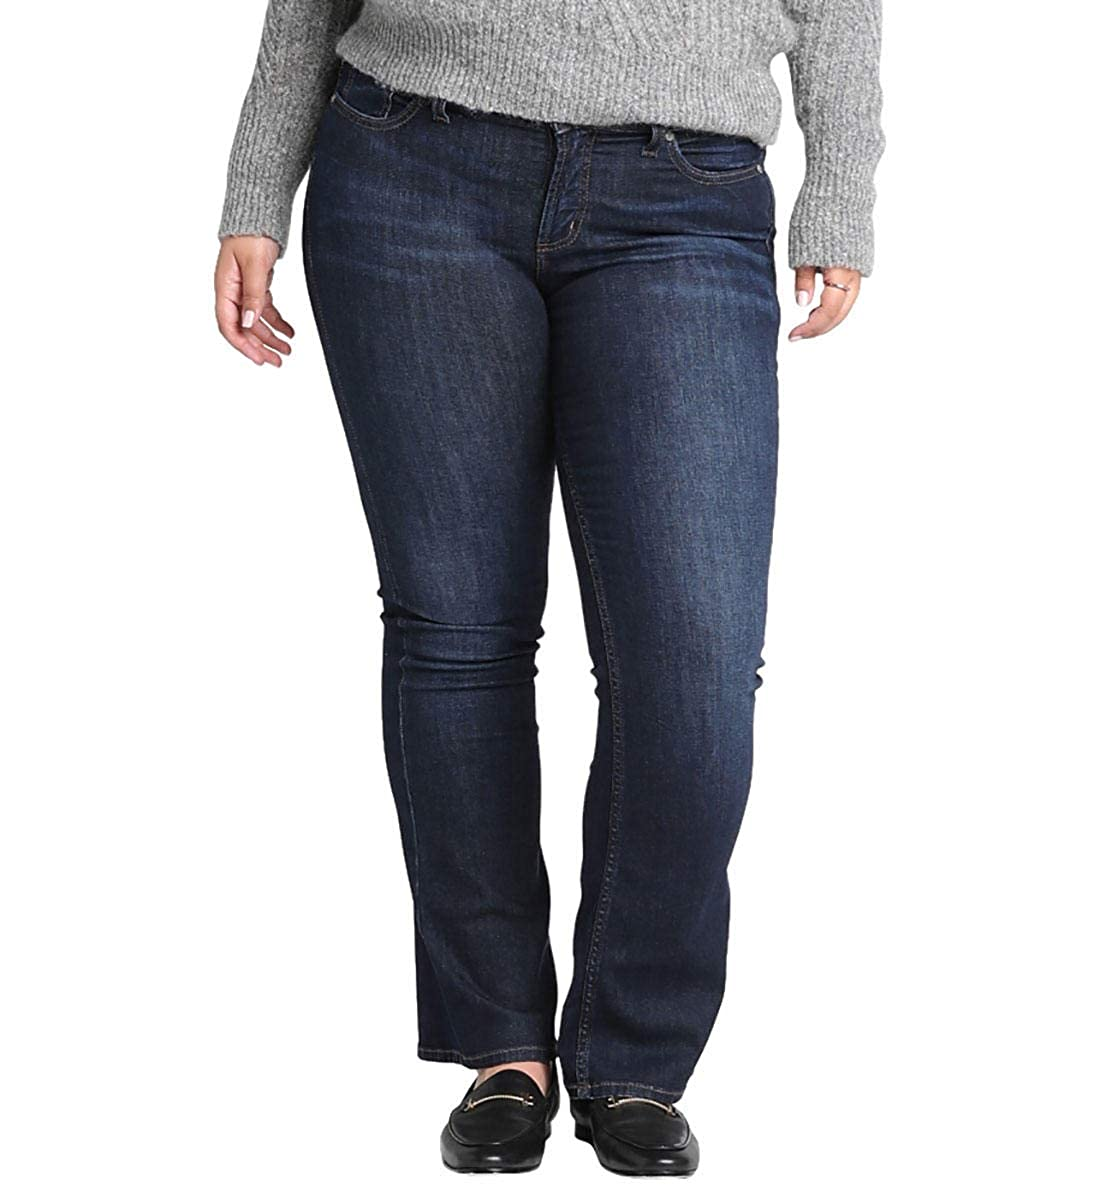 Classic Dark Wash Silver Jeans Co. Womens Plus Size Suki Curvy Fit Mid Rise Slim Bootcut Jeans Jeans